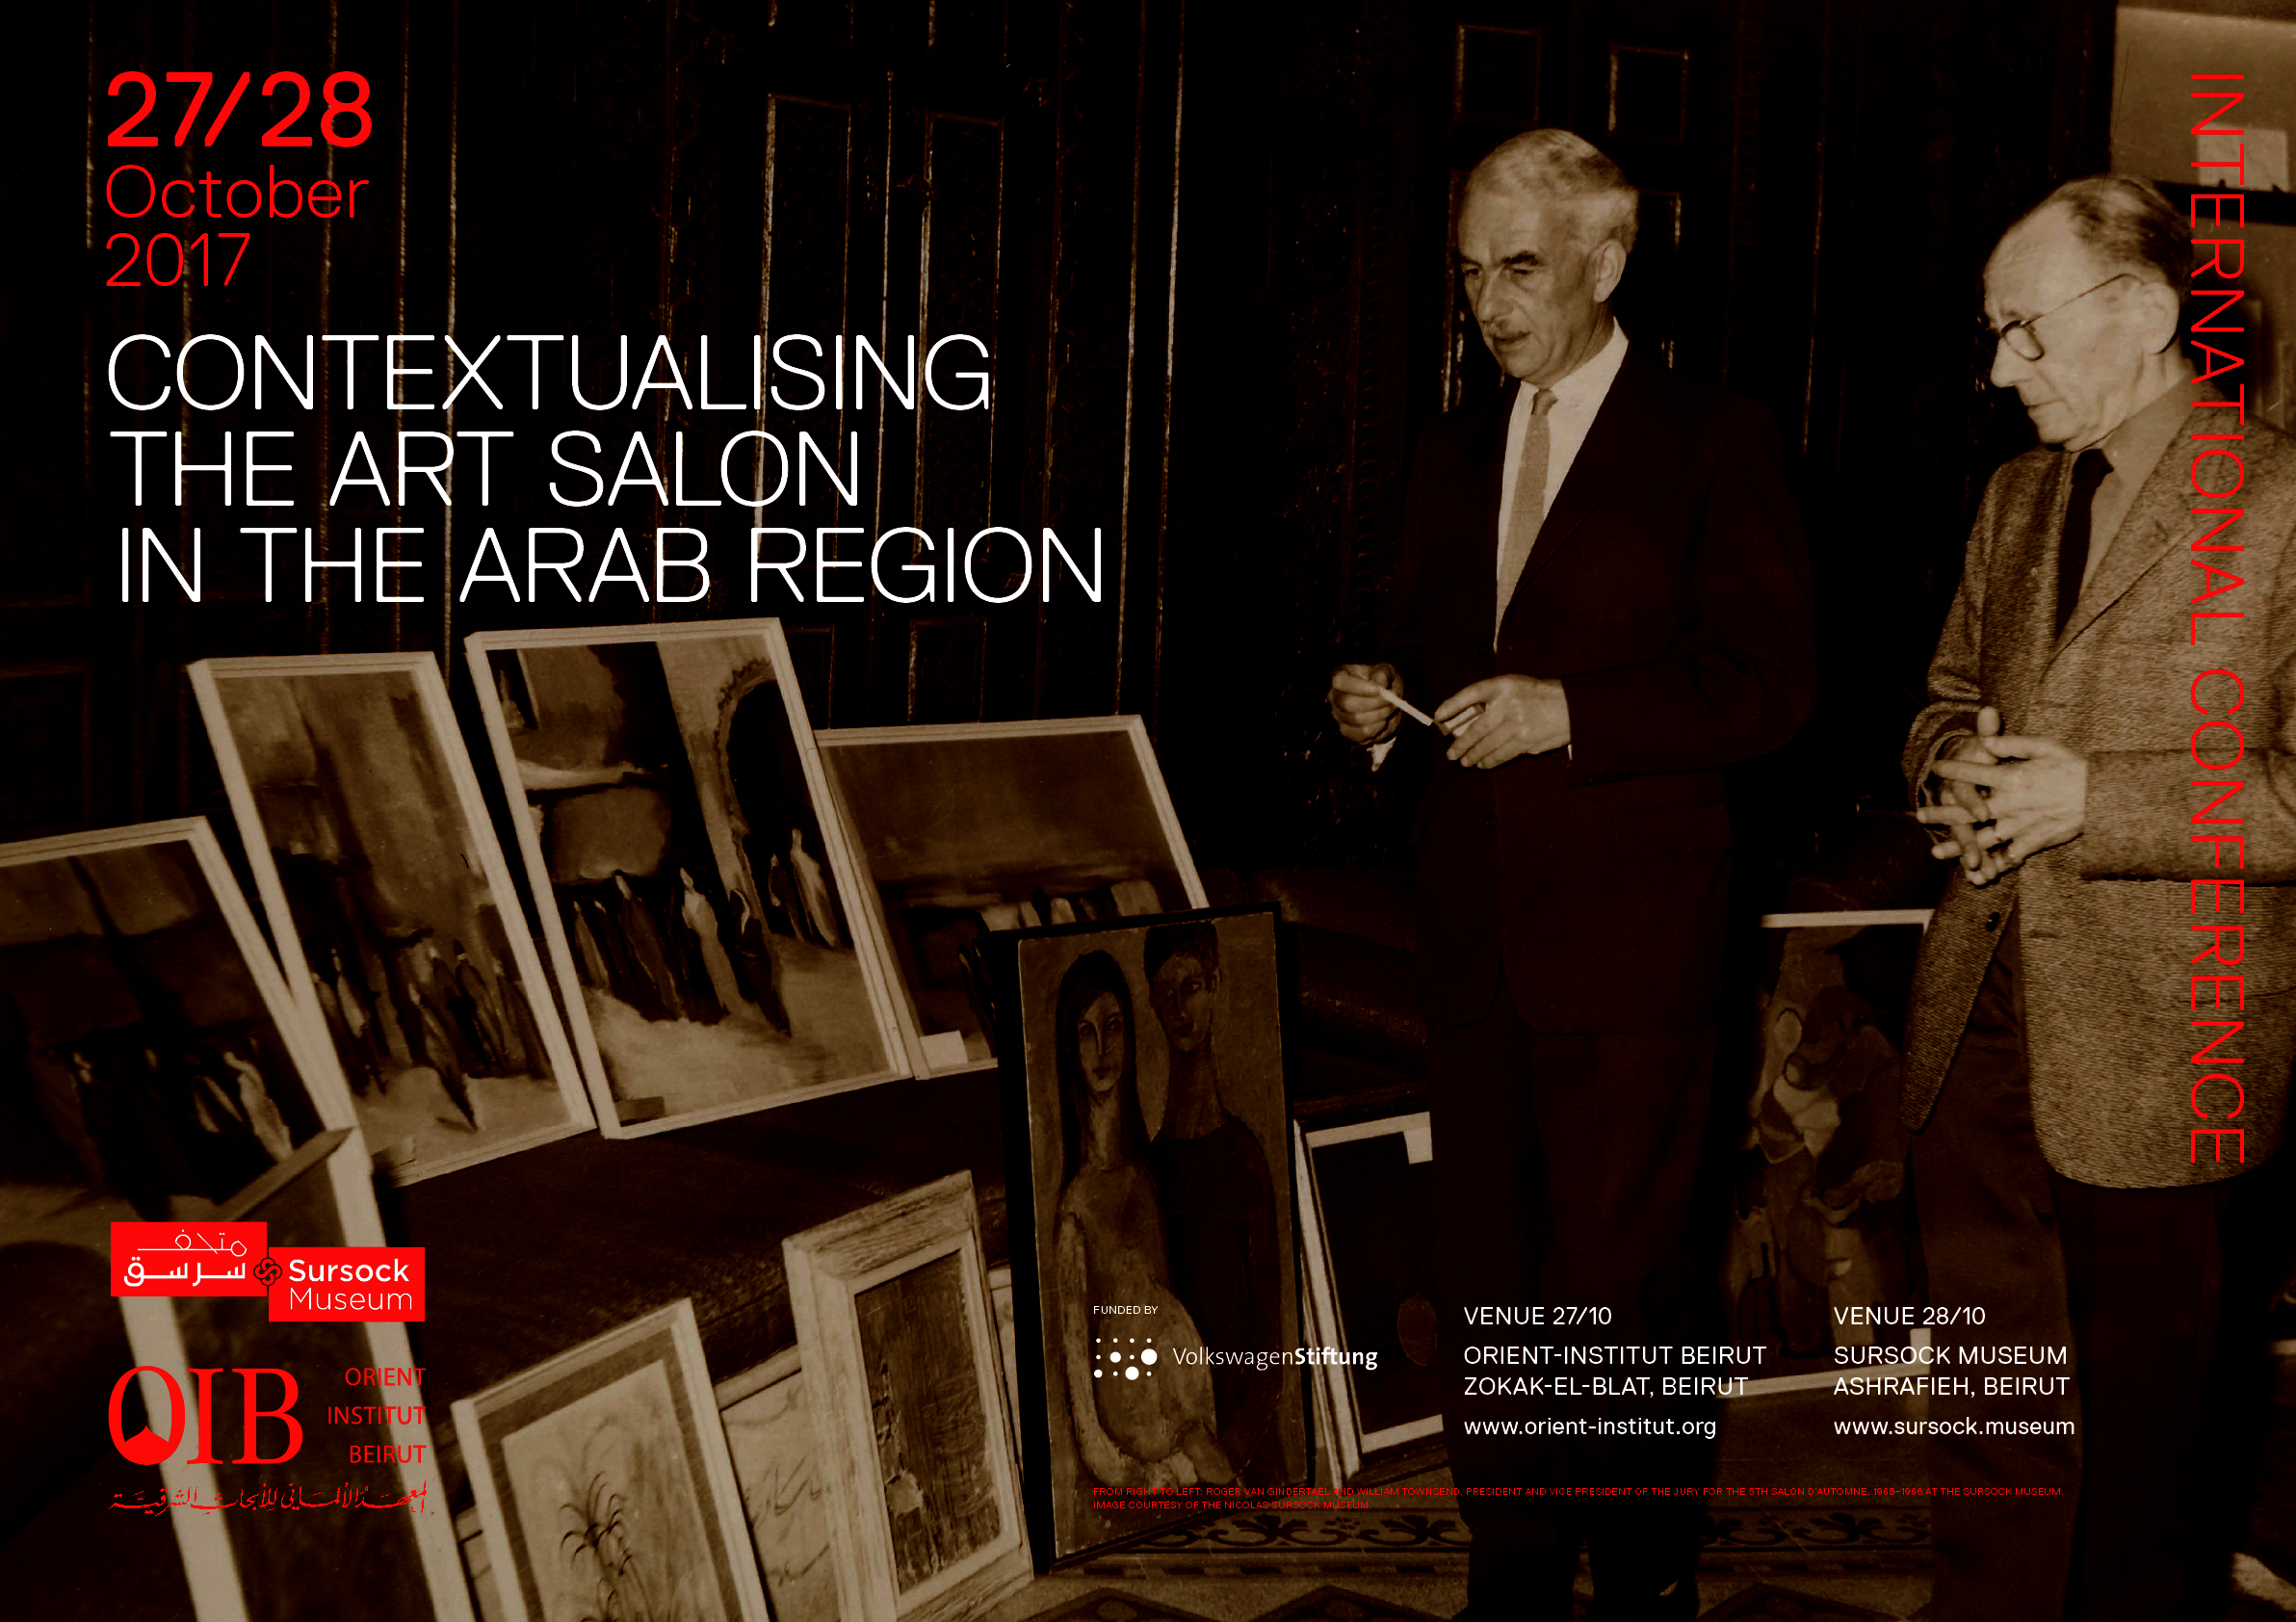 Contextualising the Art Salon in the Arab Region